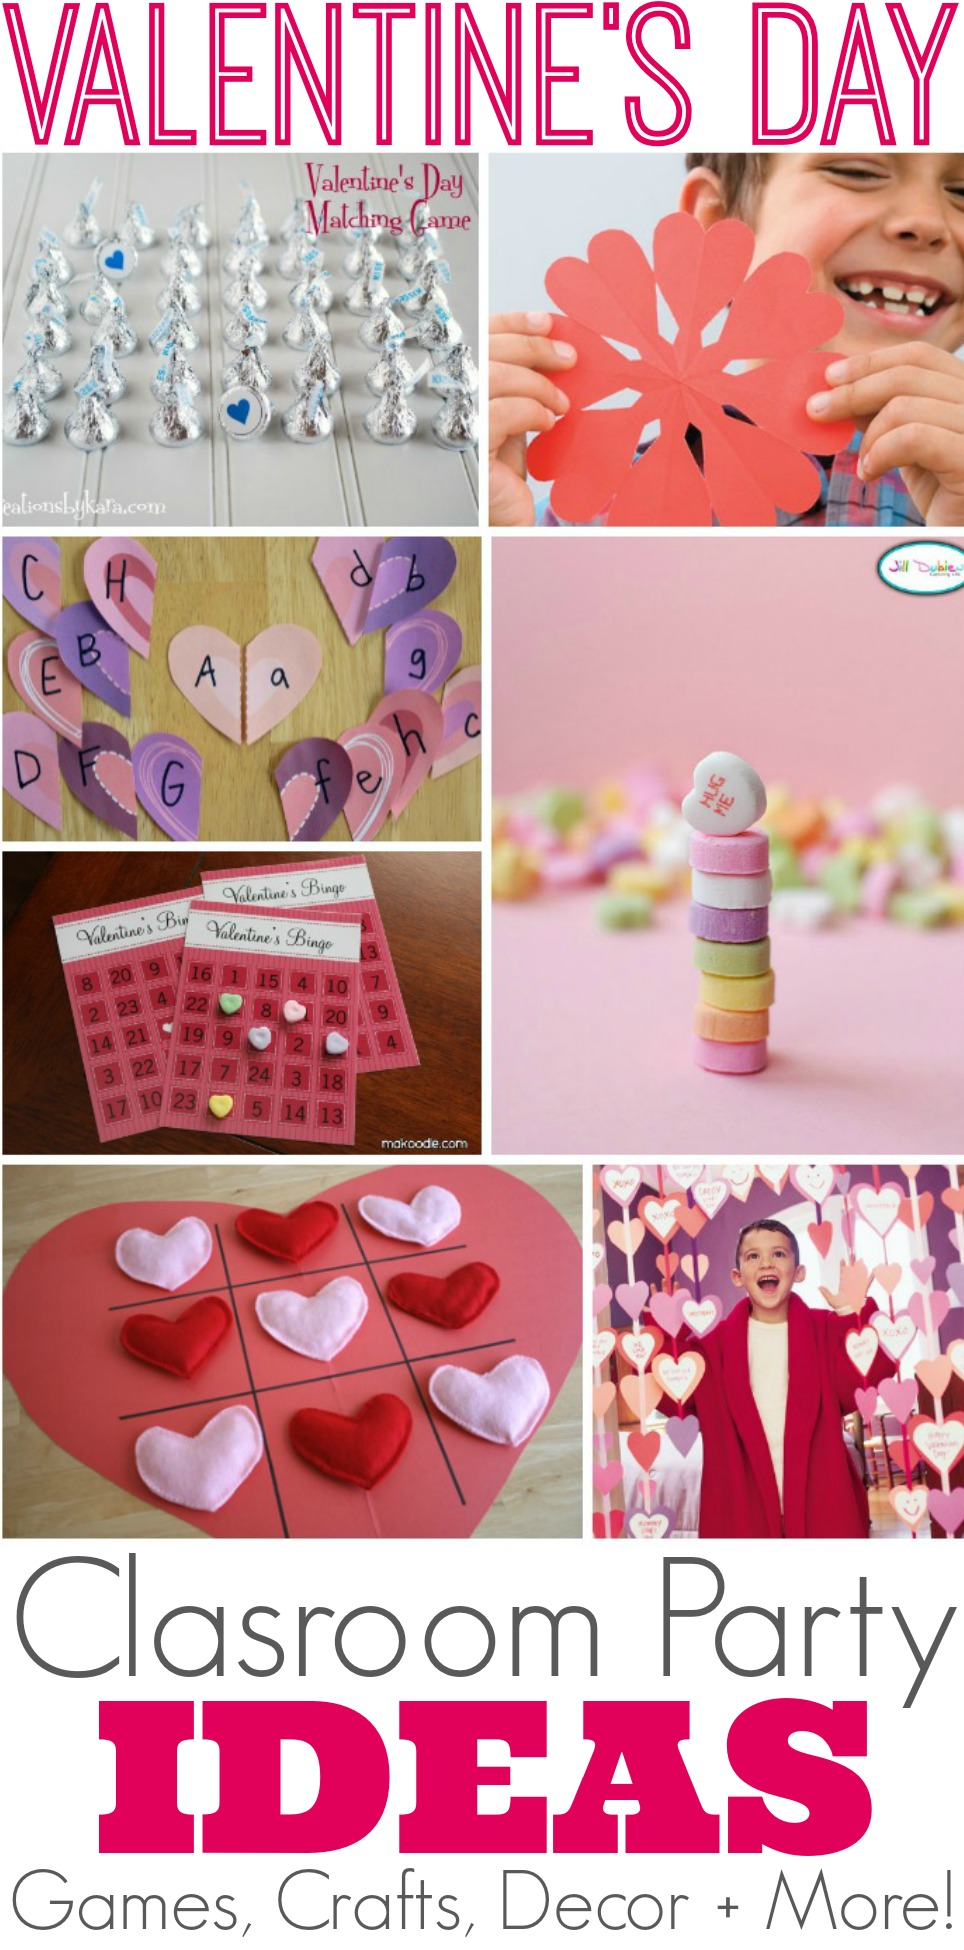 Classroom Event Ideas ~ Creative valentine s day class party ideas